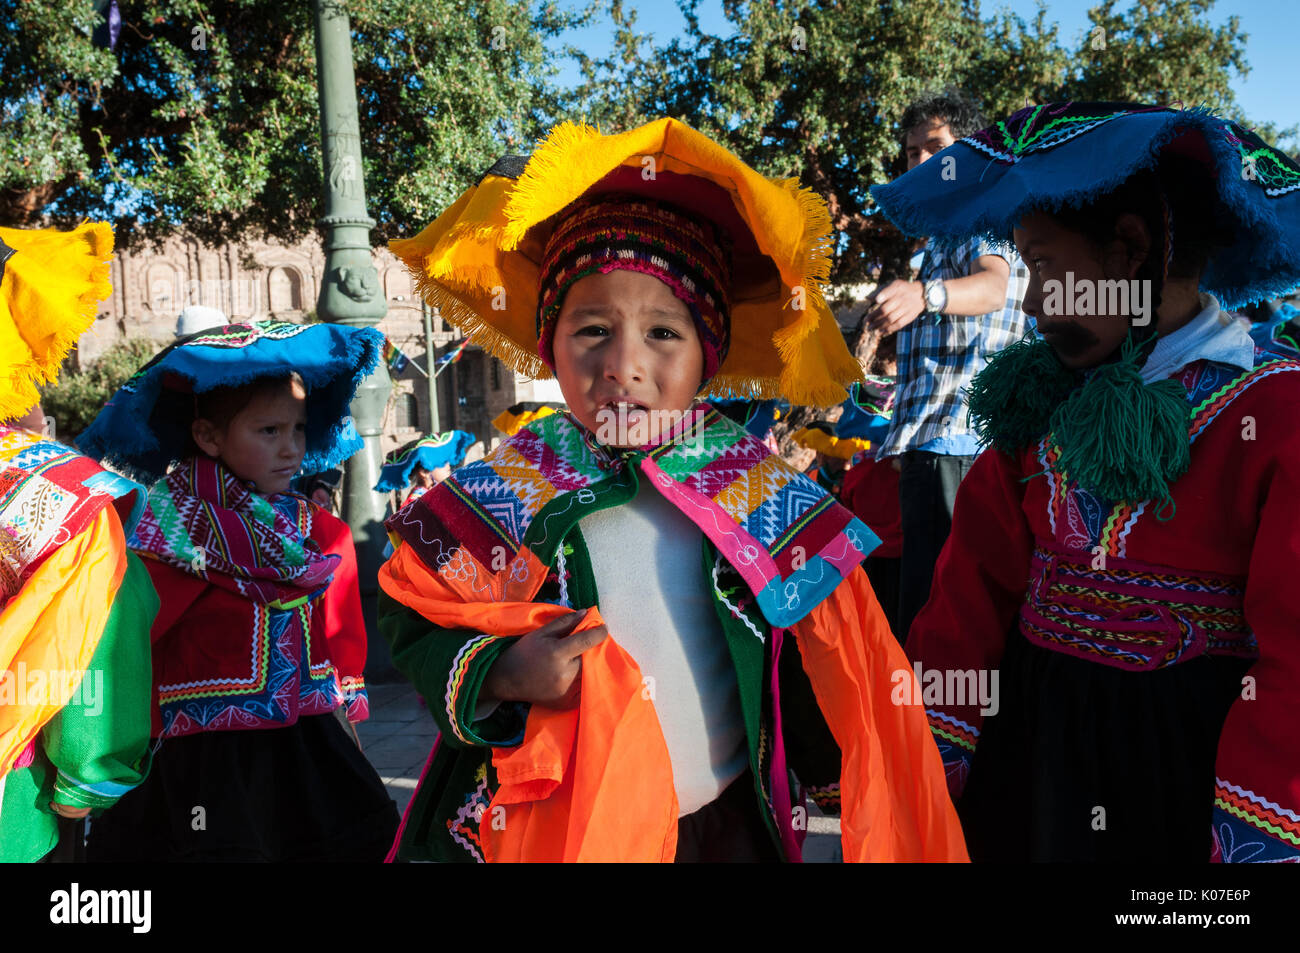 A group of children wearing Quechua ponchos and montera hats prepare for dance competition during Corpus Christi festival, Plaza de Armas, Cusco, Peru - Stock Image